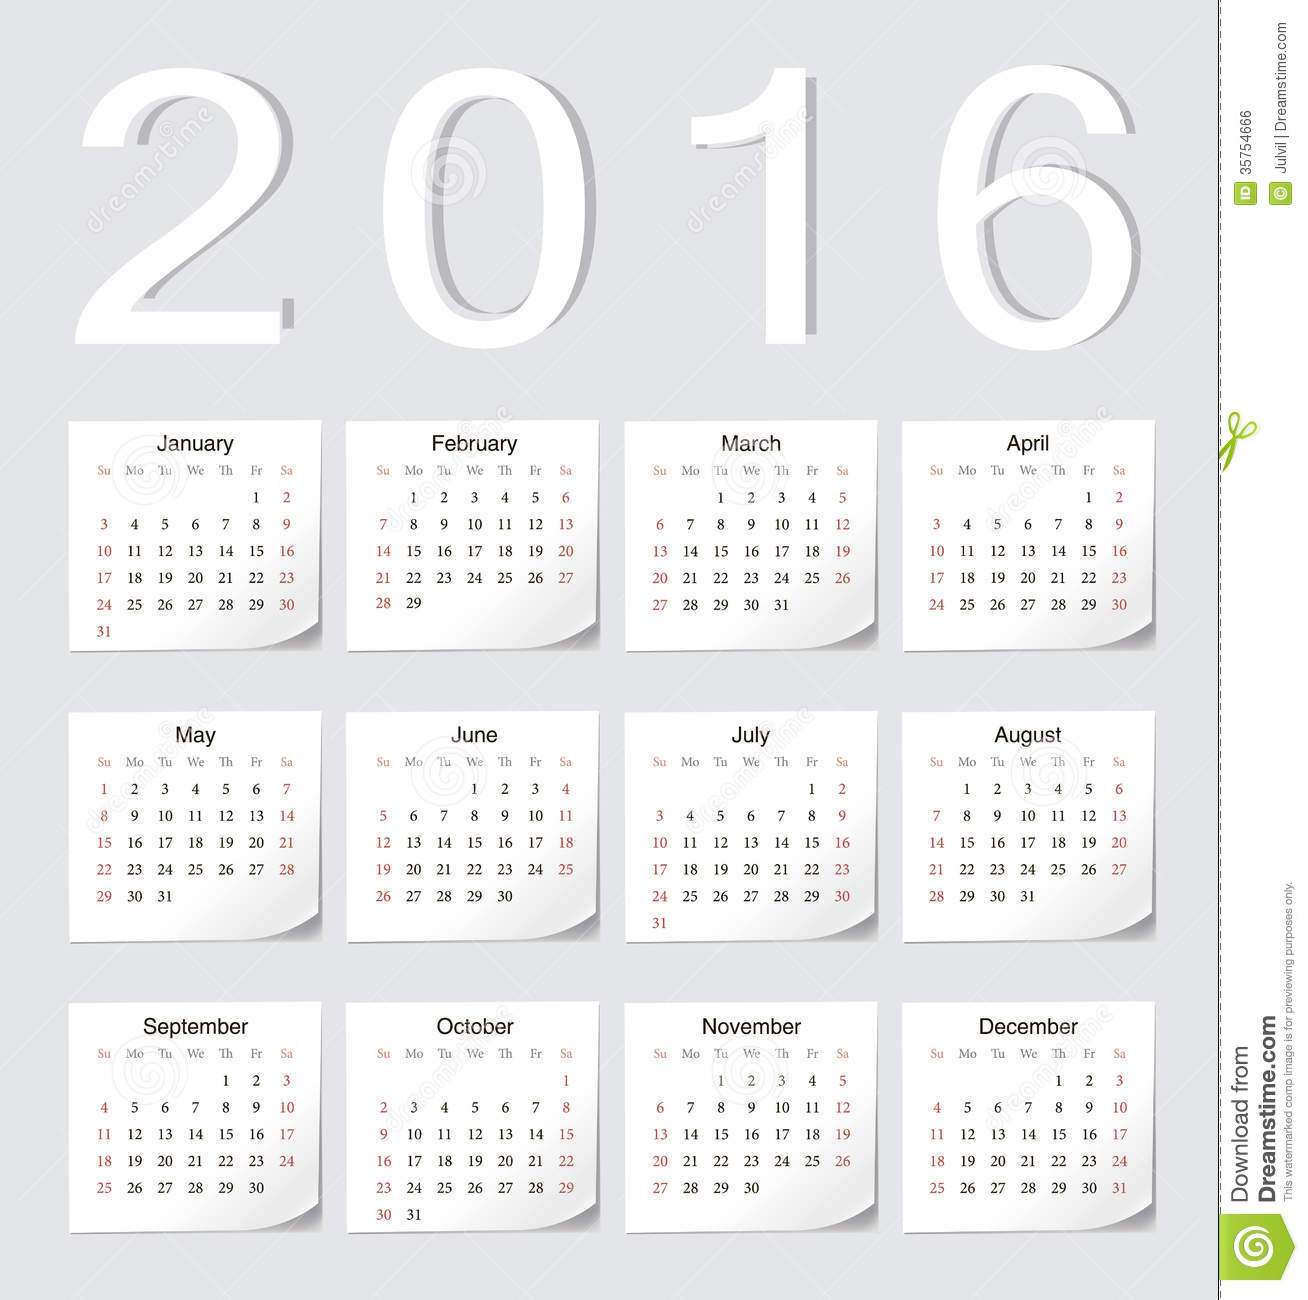 Weekly Calendar Vector : European calendar royalty free stock image